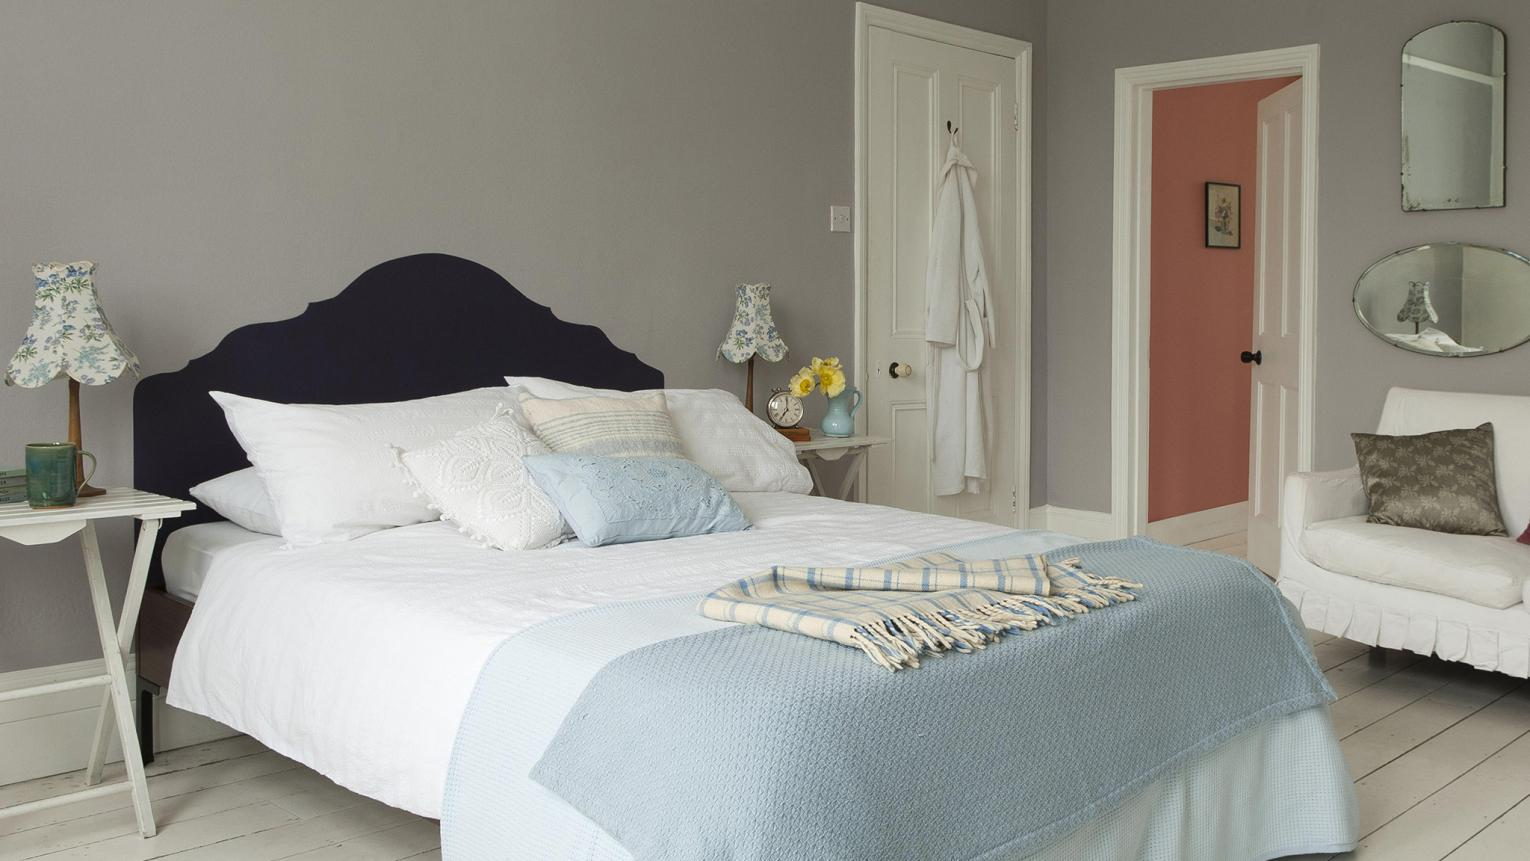 Use soft, dreamy neutrals to create a bedroom decor that encourages rest and relaxation.